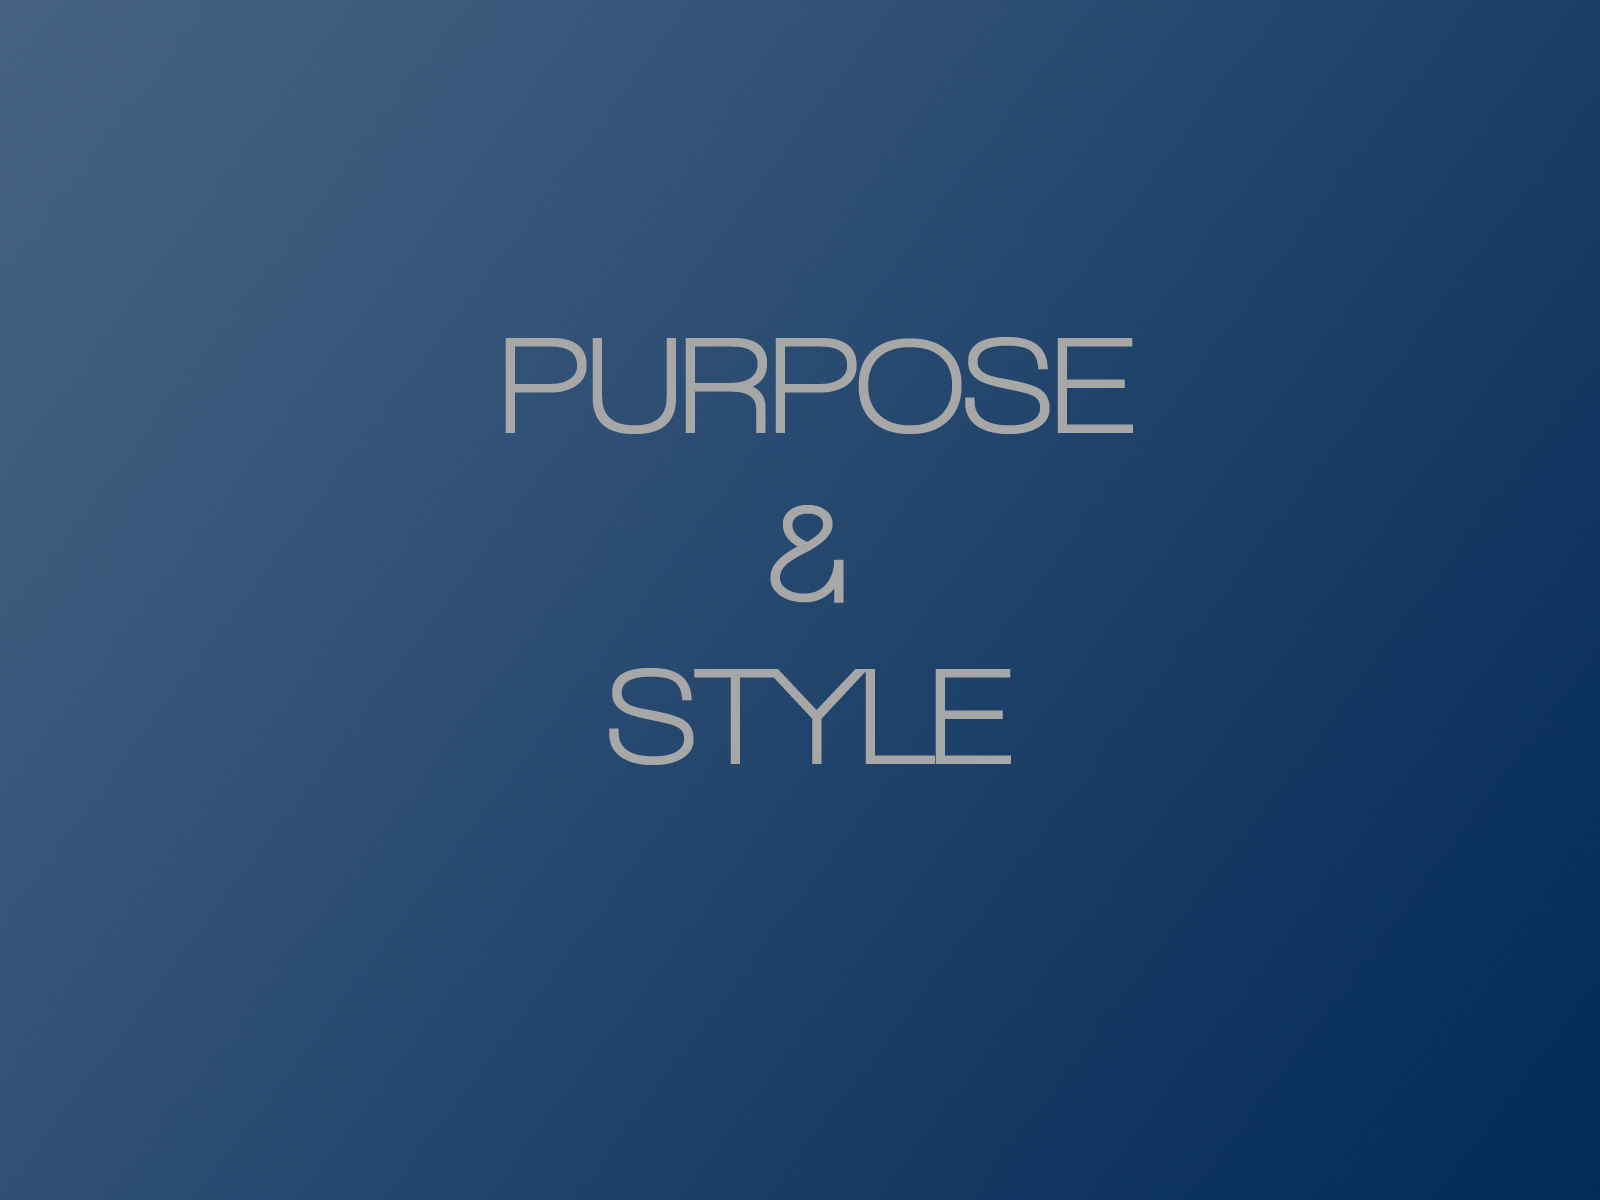 PowerPoint Design – 2 – Purpose